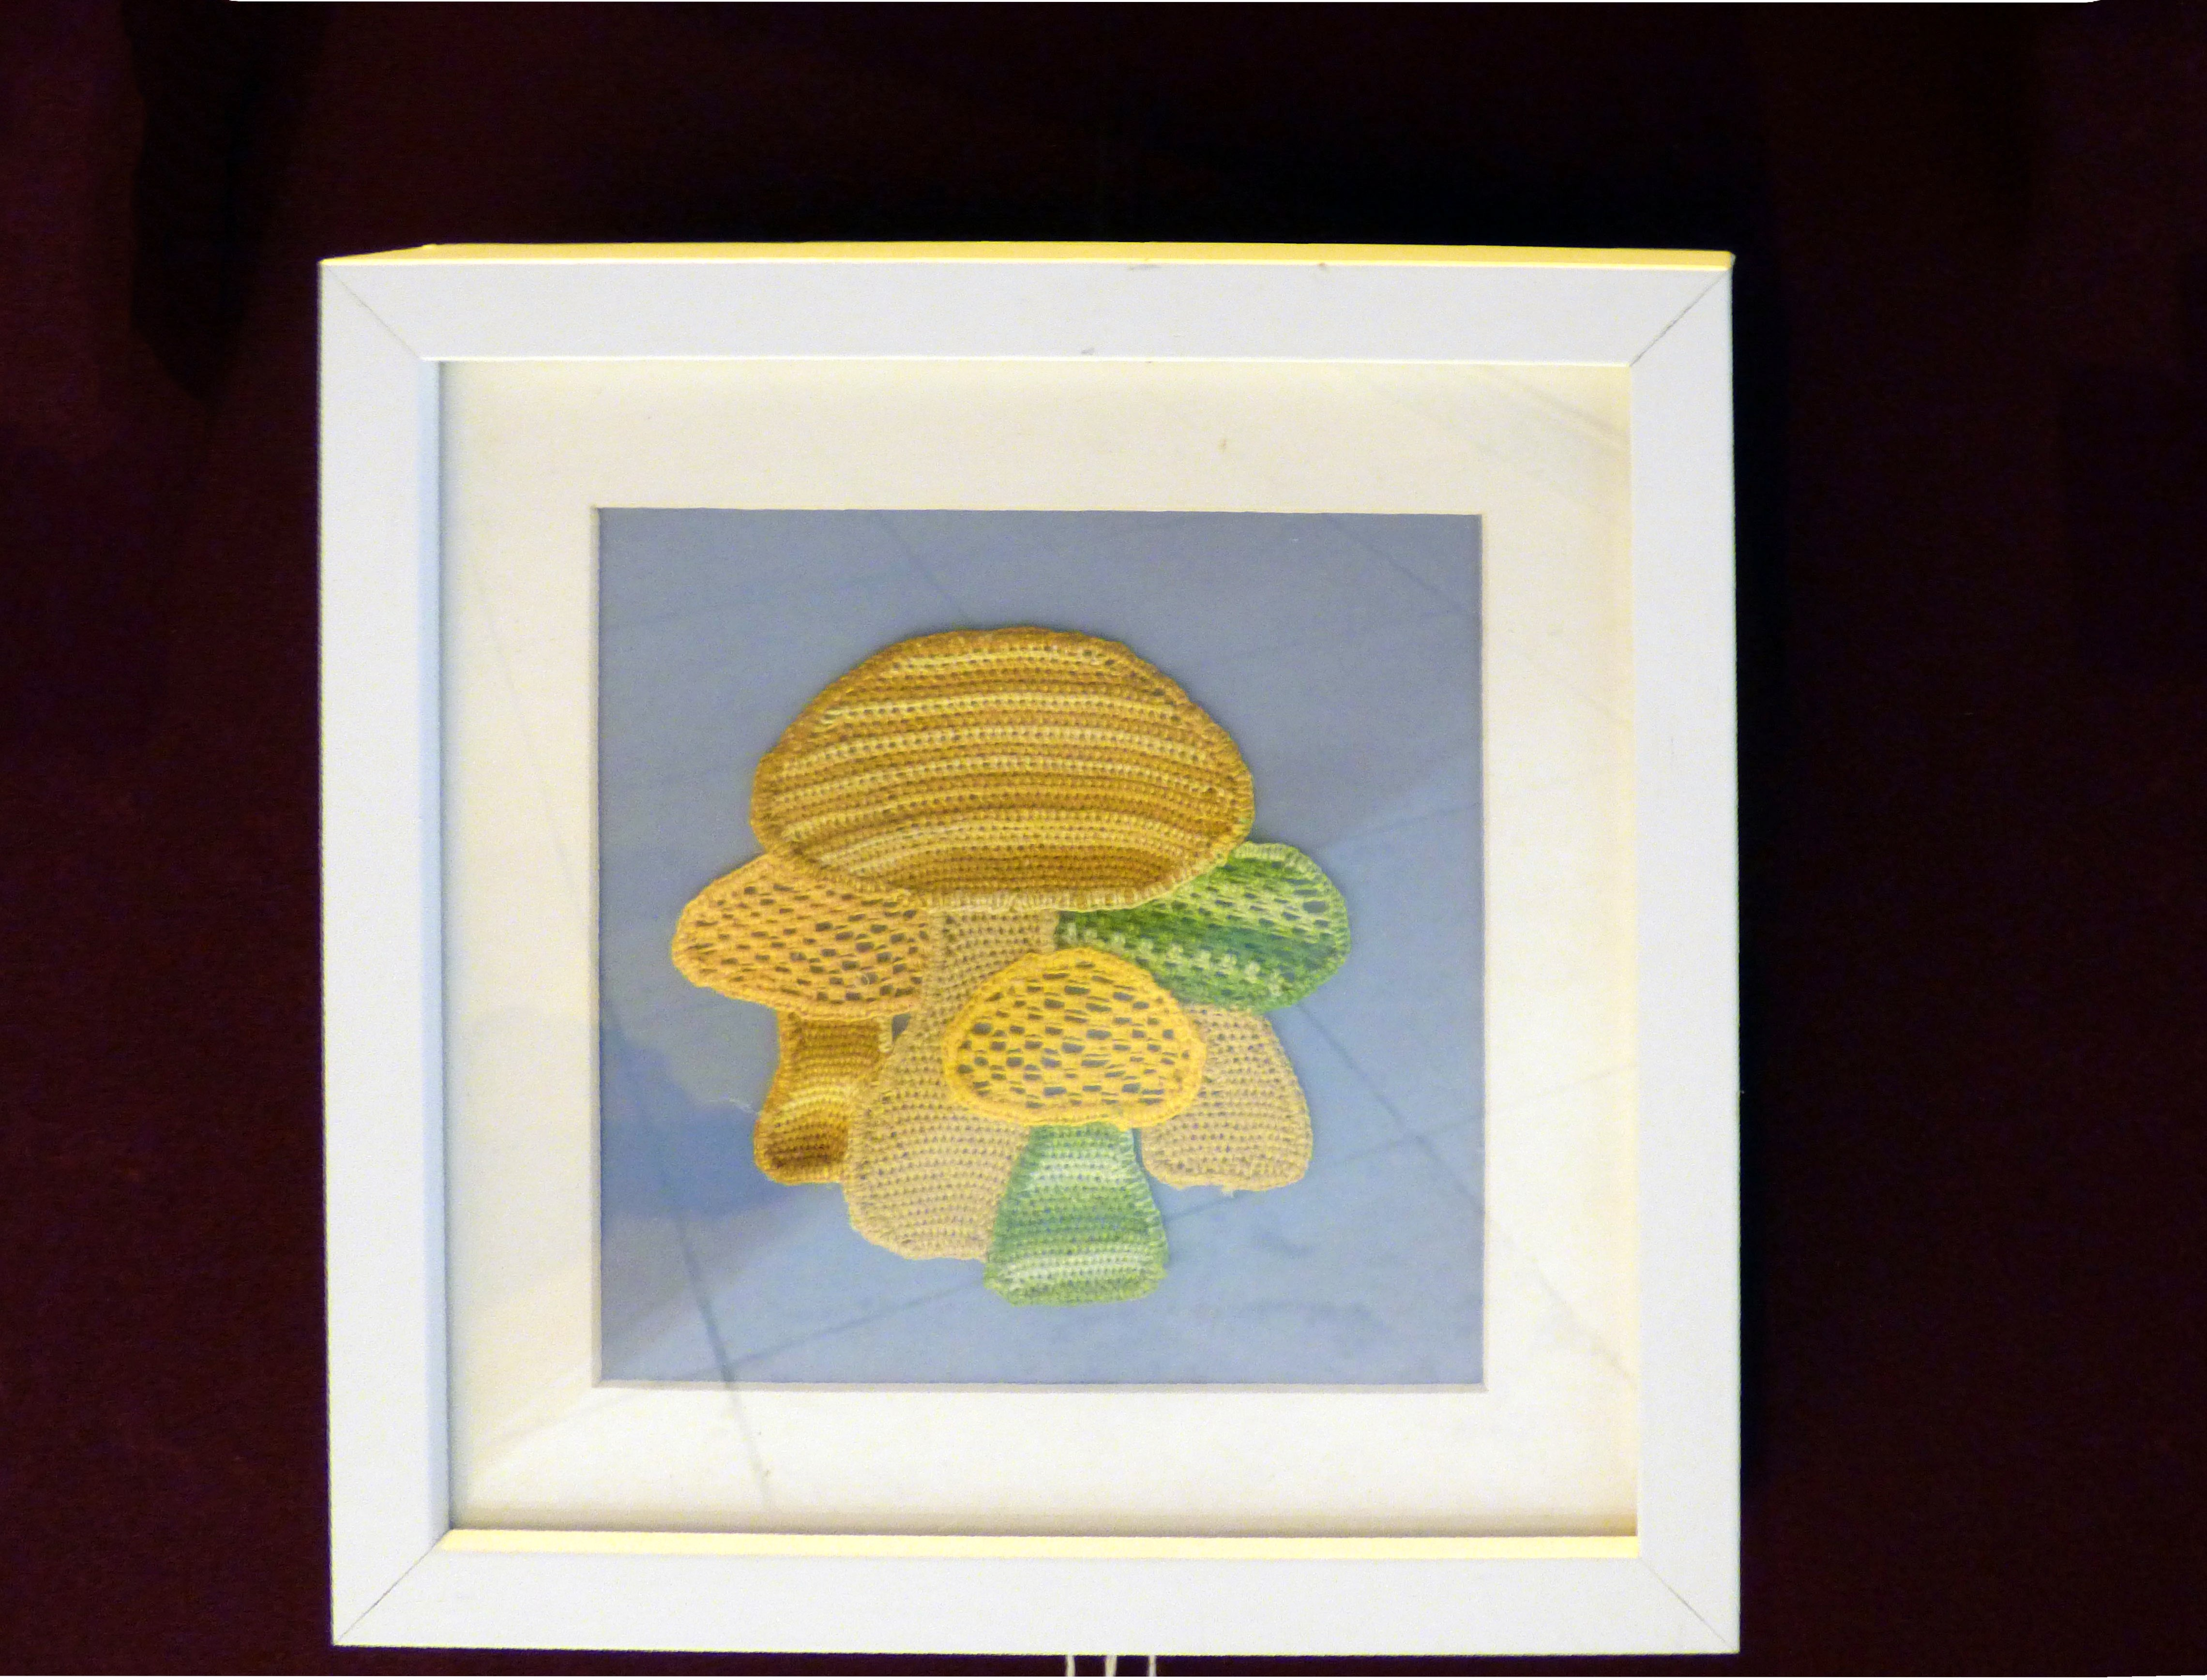 MUSHROOMS by Vicky Williams at 60 Glorious Years exhibition 2016